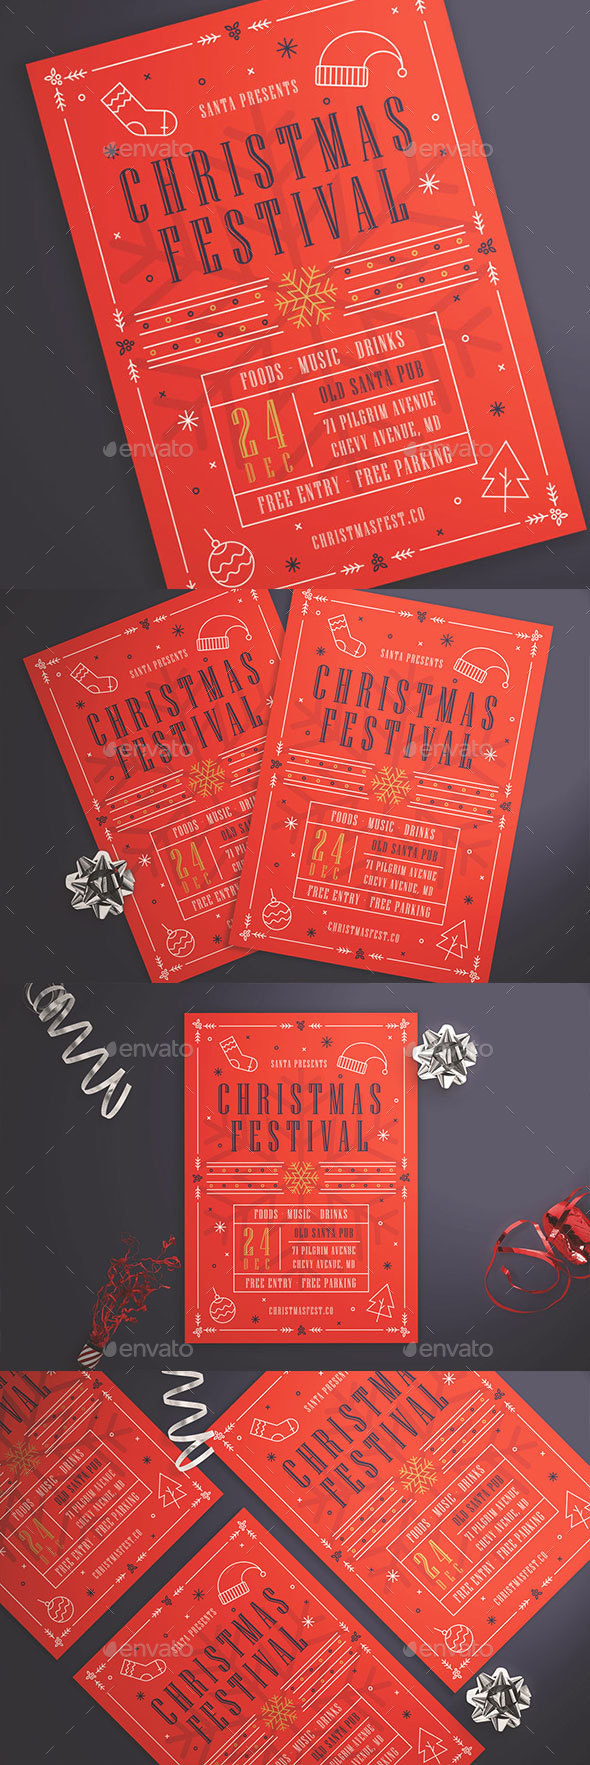 Christmas Festival Flyer - Events Flyers